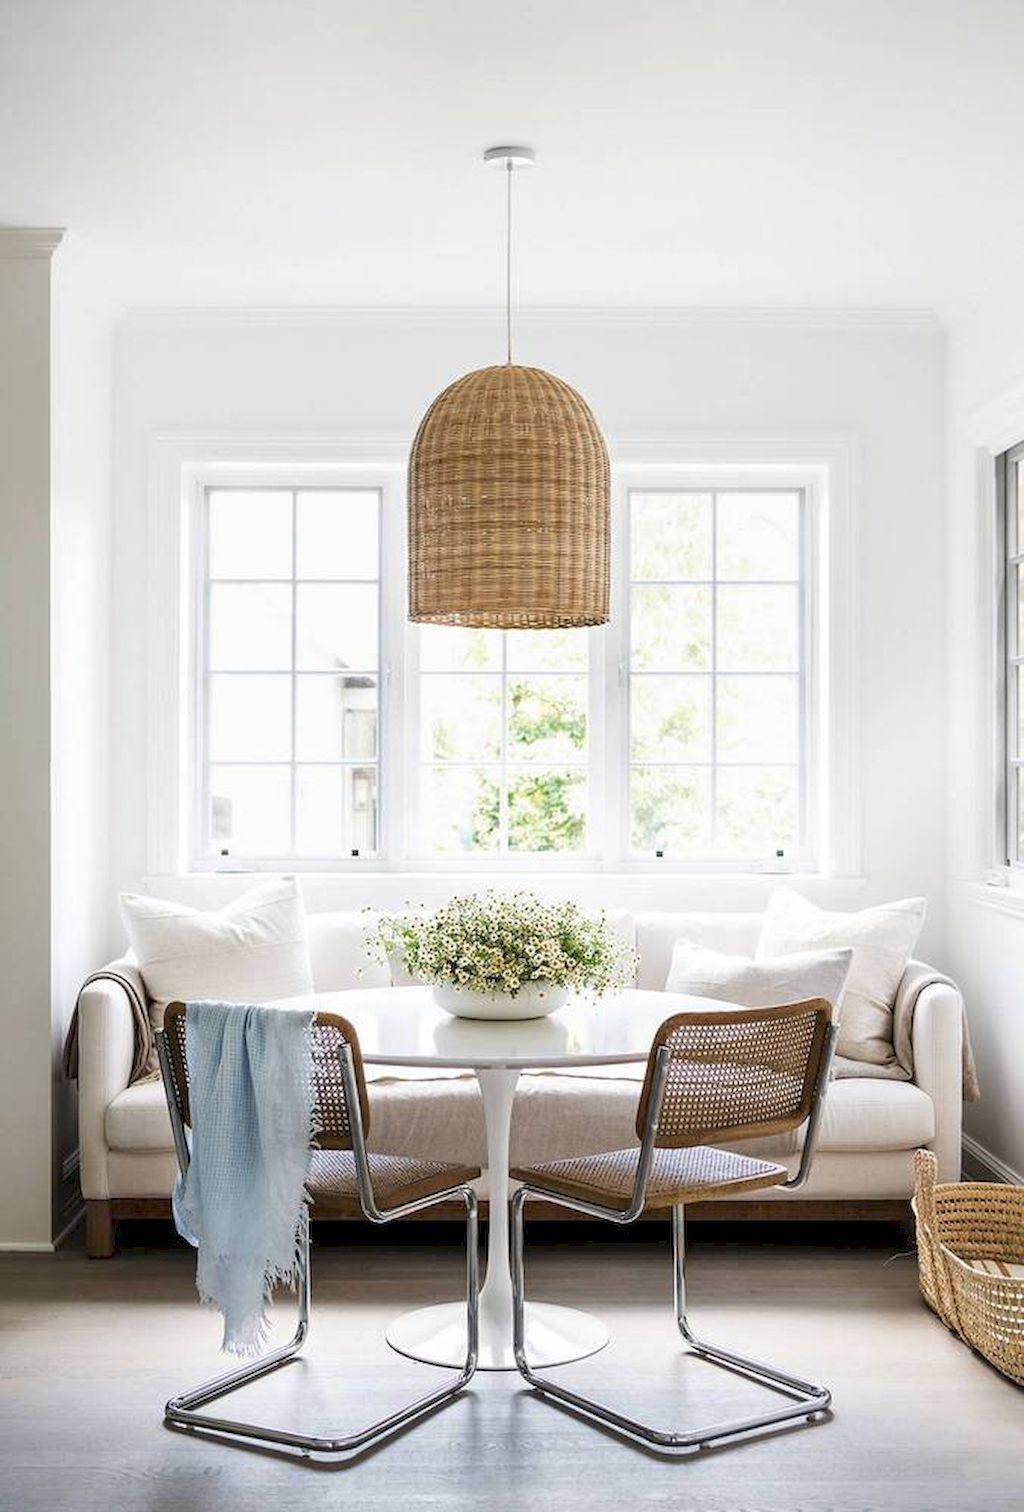 75 Genius Small Dining Room Layout Ideas  Small Dining Rooms Alluring Living Room Dining Room Layout Ideas Review